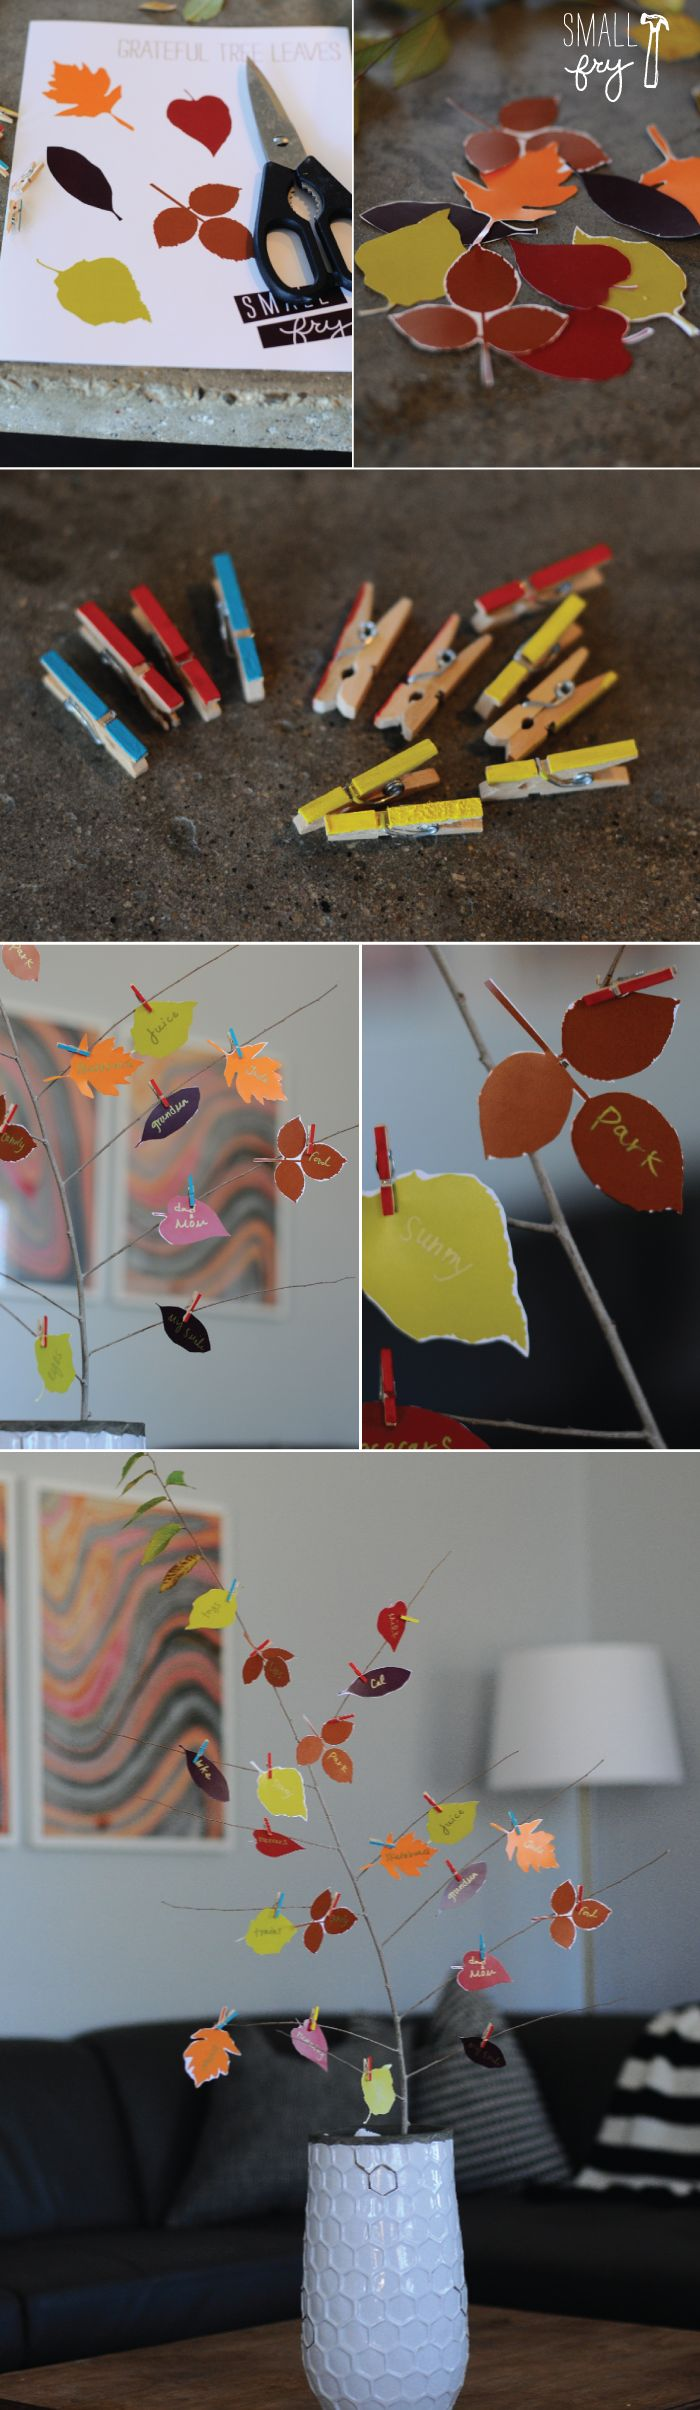 Make a Gratitude Tree with free leaf printable